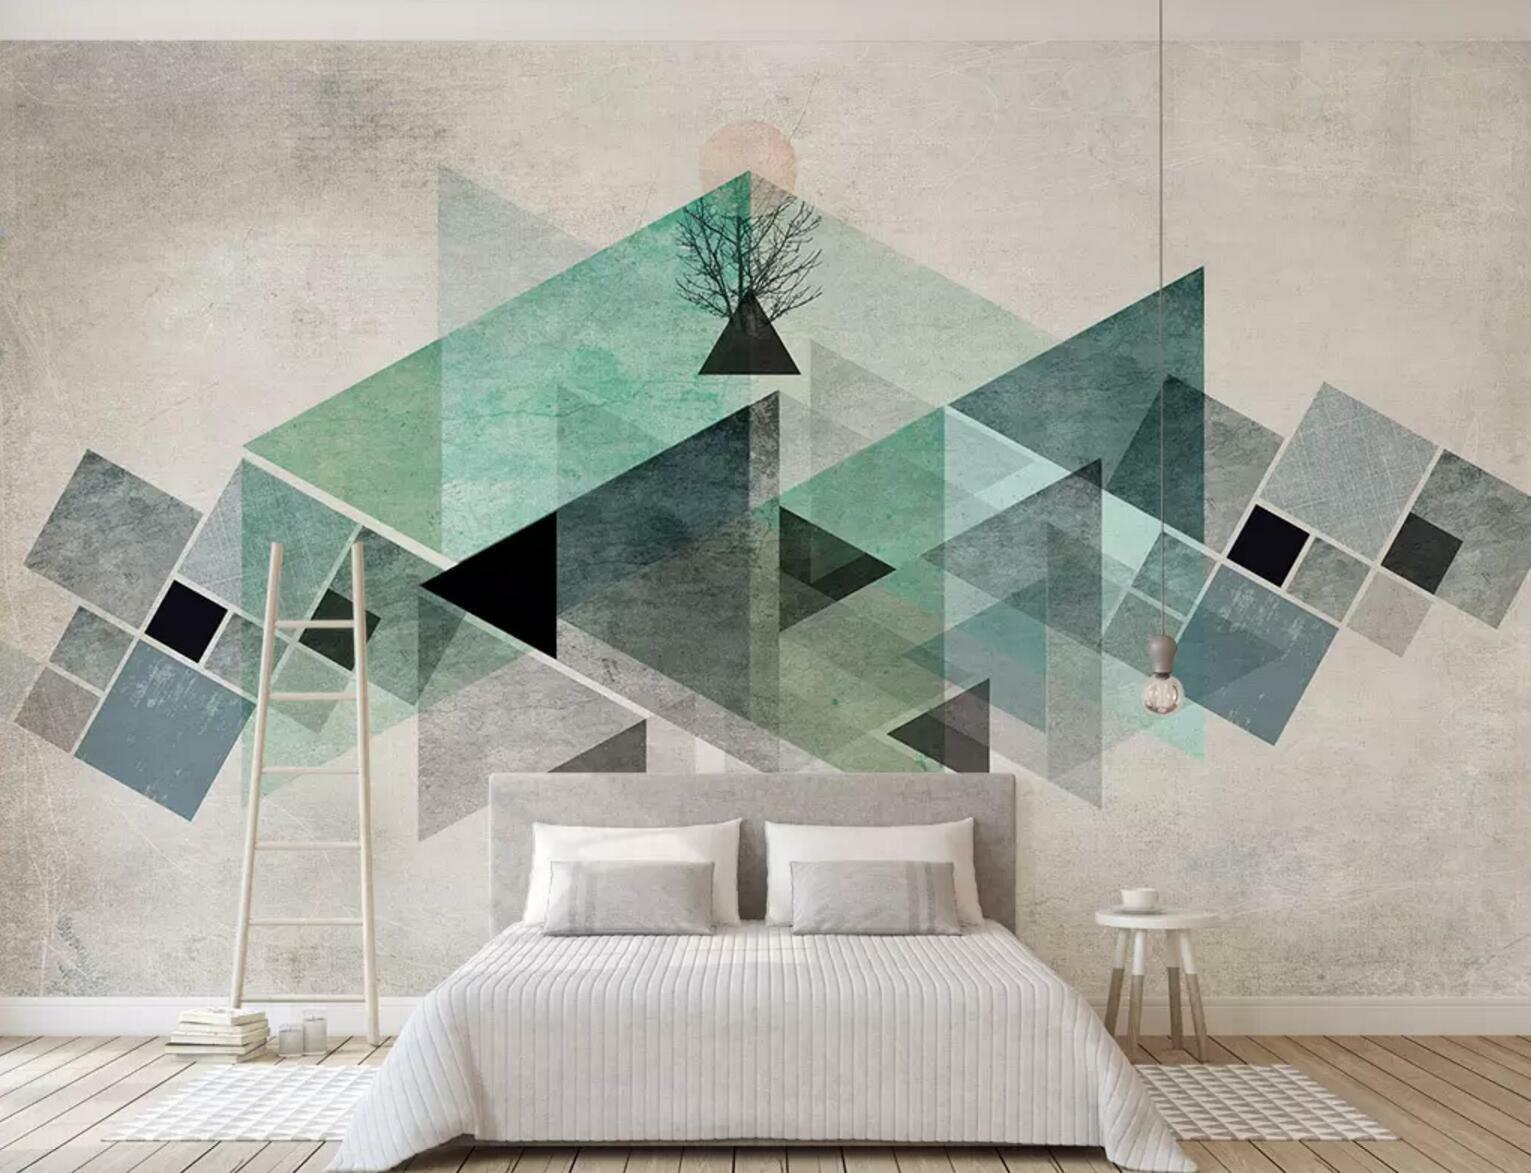 3D Pattern Tree Art 7 Wall Paper Exclusive MXY Wallpaper Mural Decal Indoor Wall